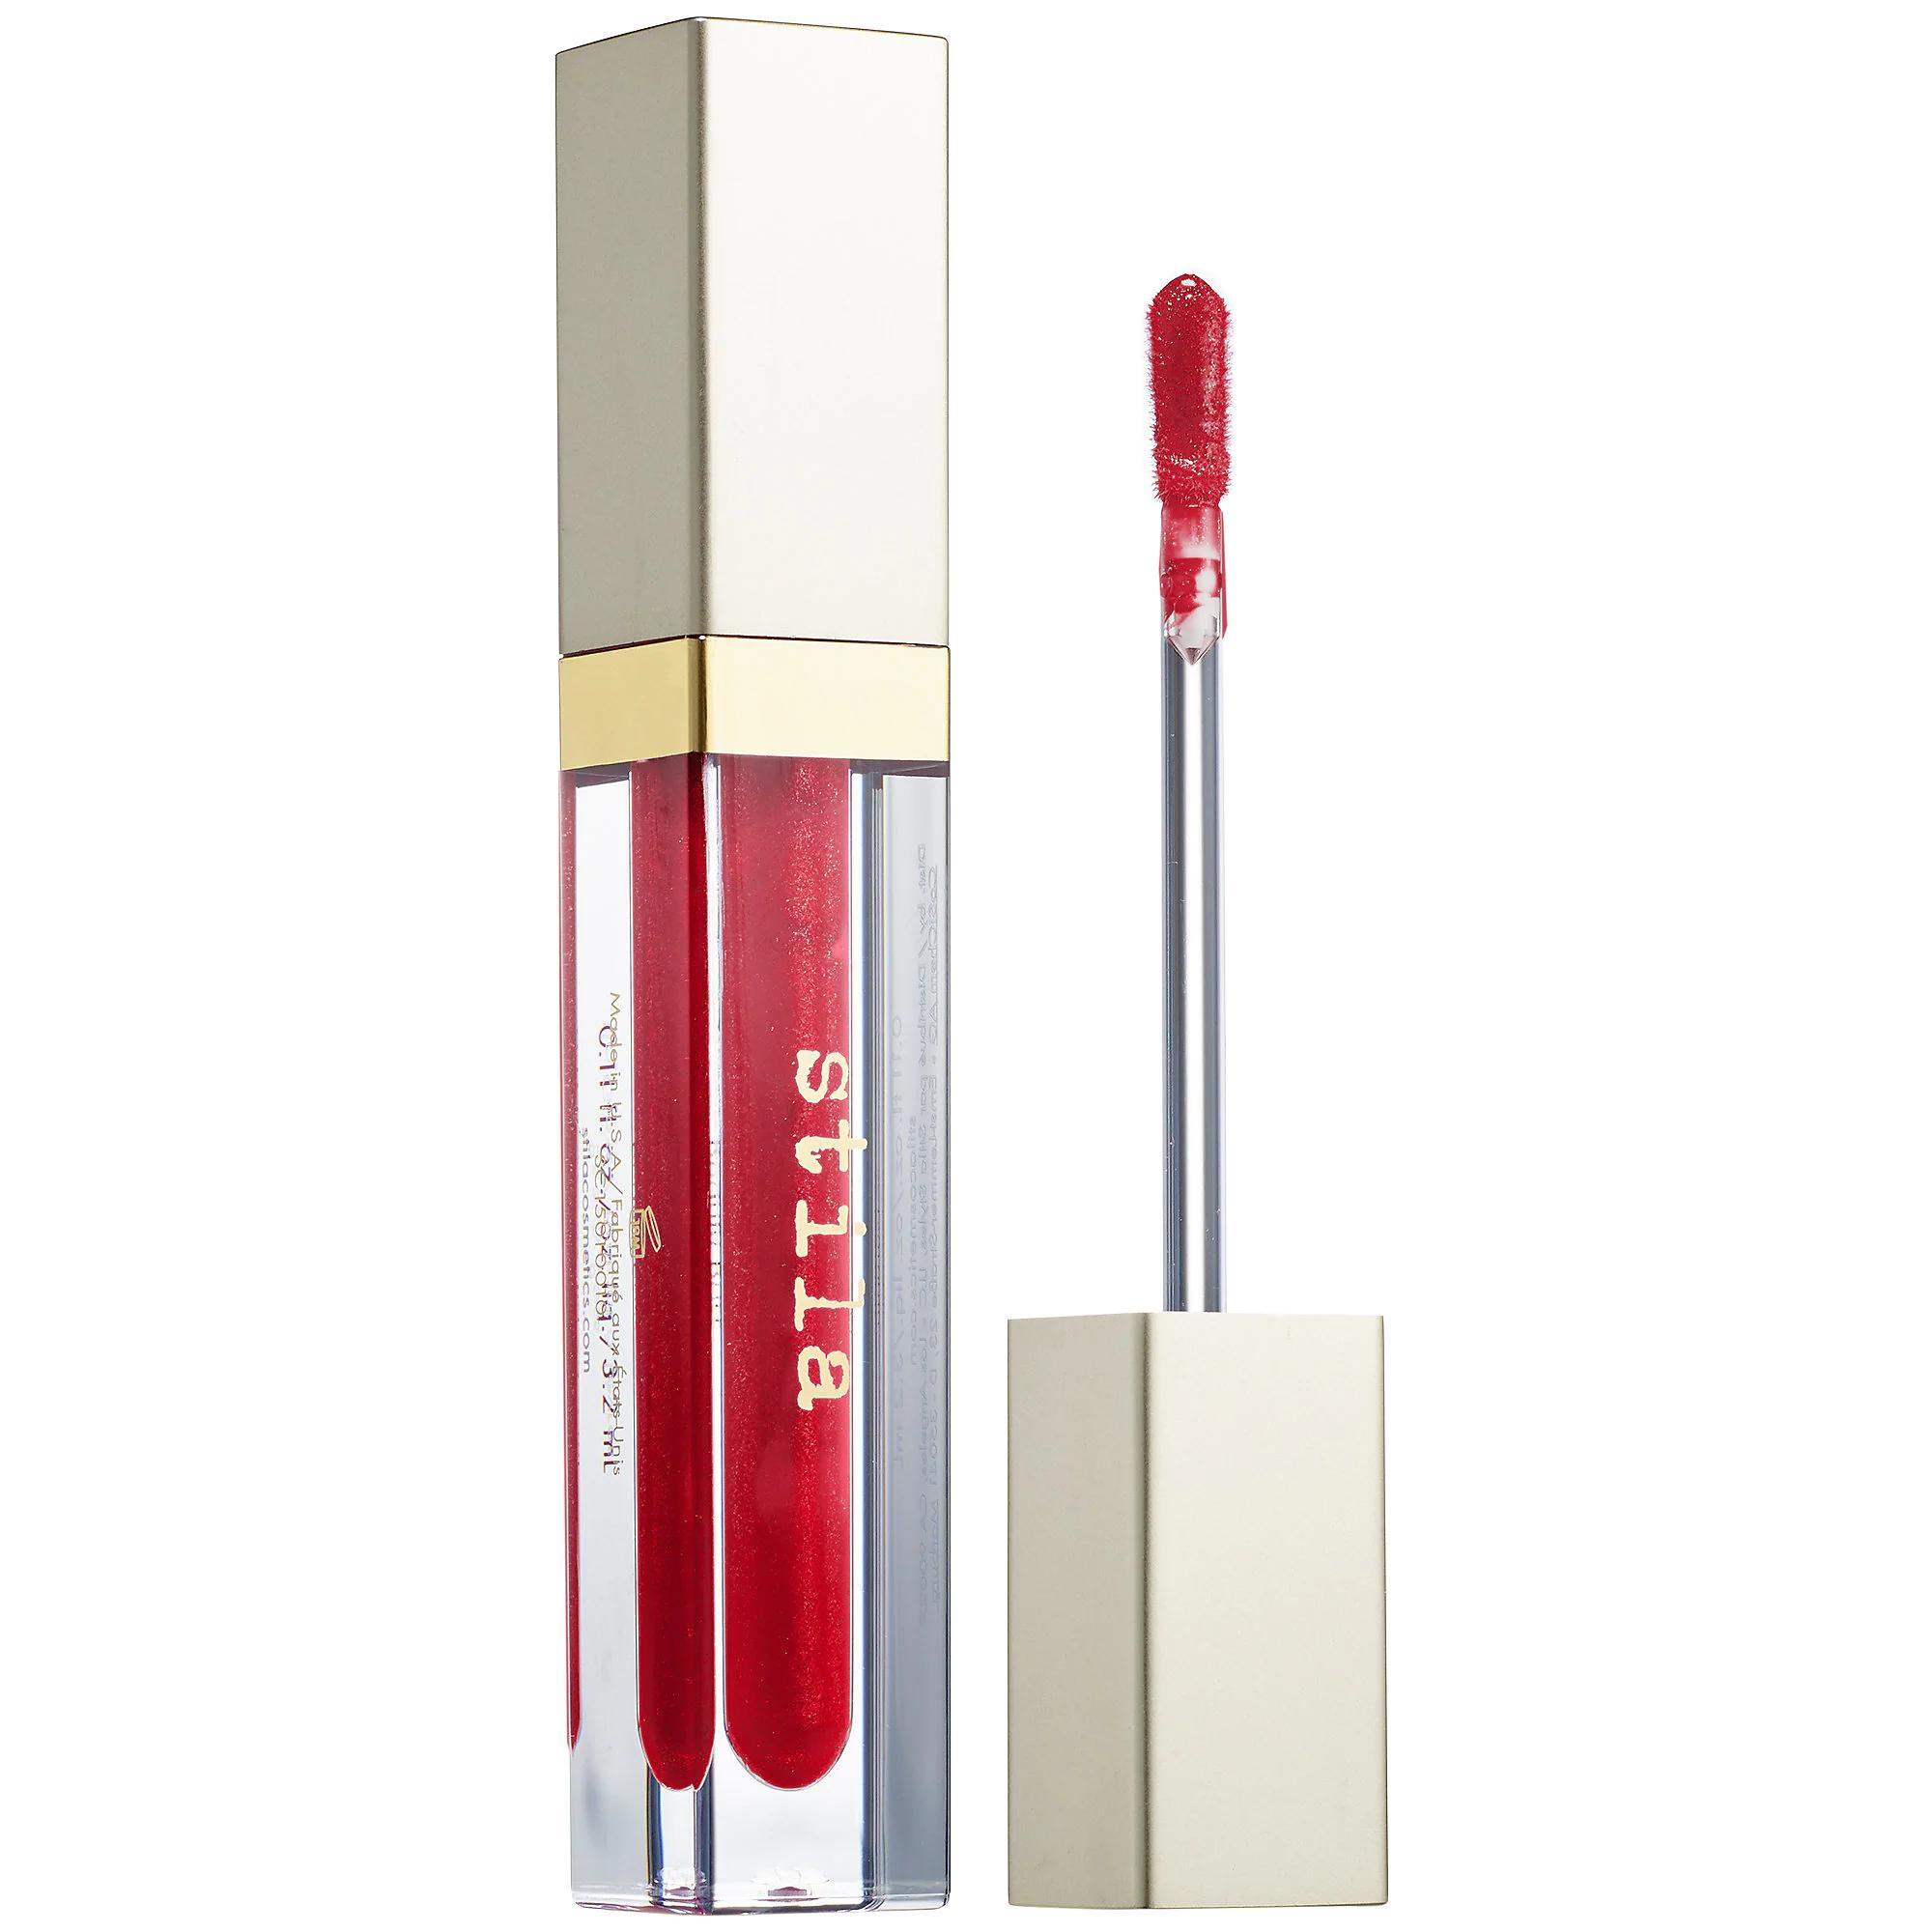 Stila Beauty Boss Lip Gloss In The Red